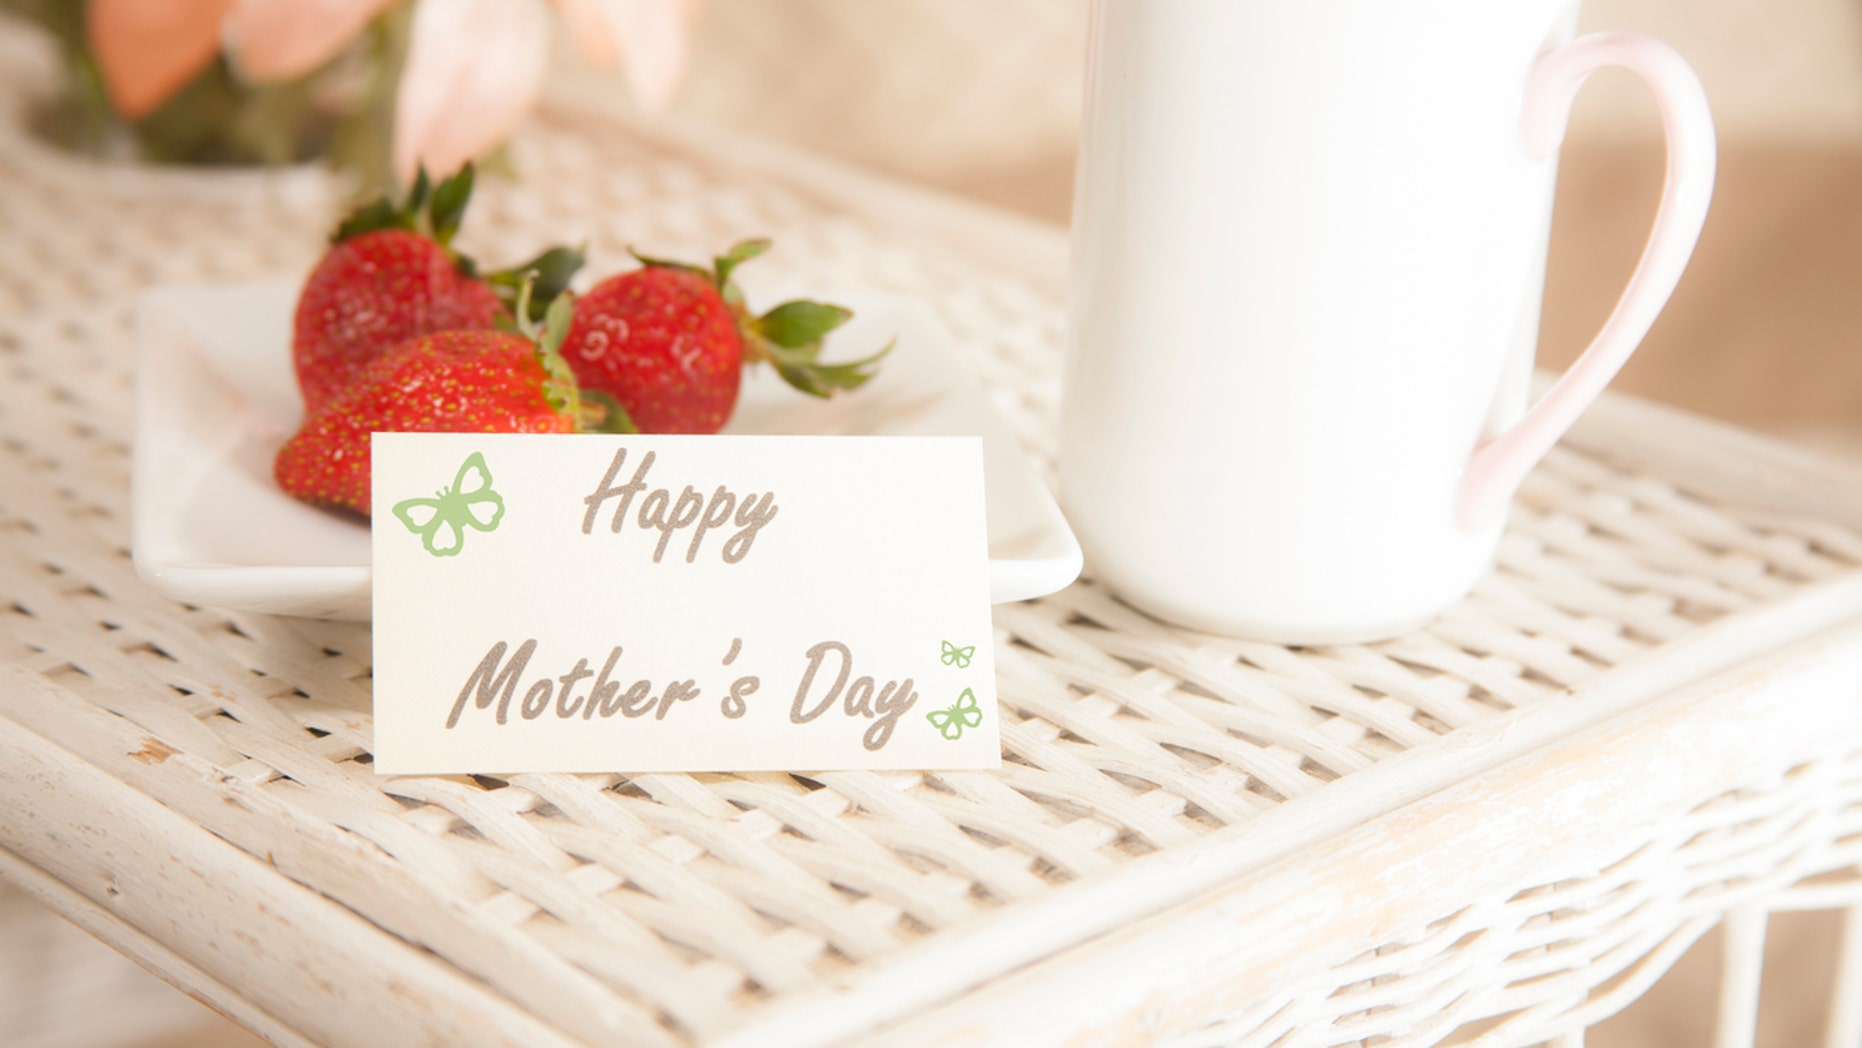 Surprise mom with a delicious breakfast in bed this Mother's Day.